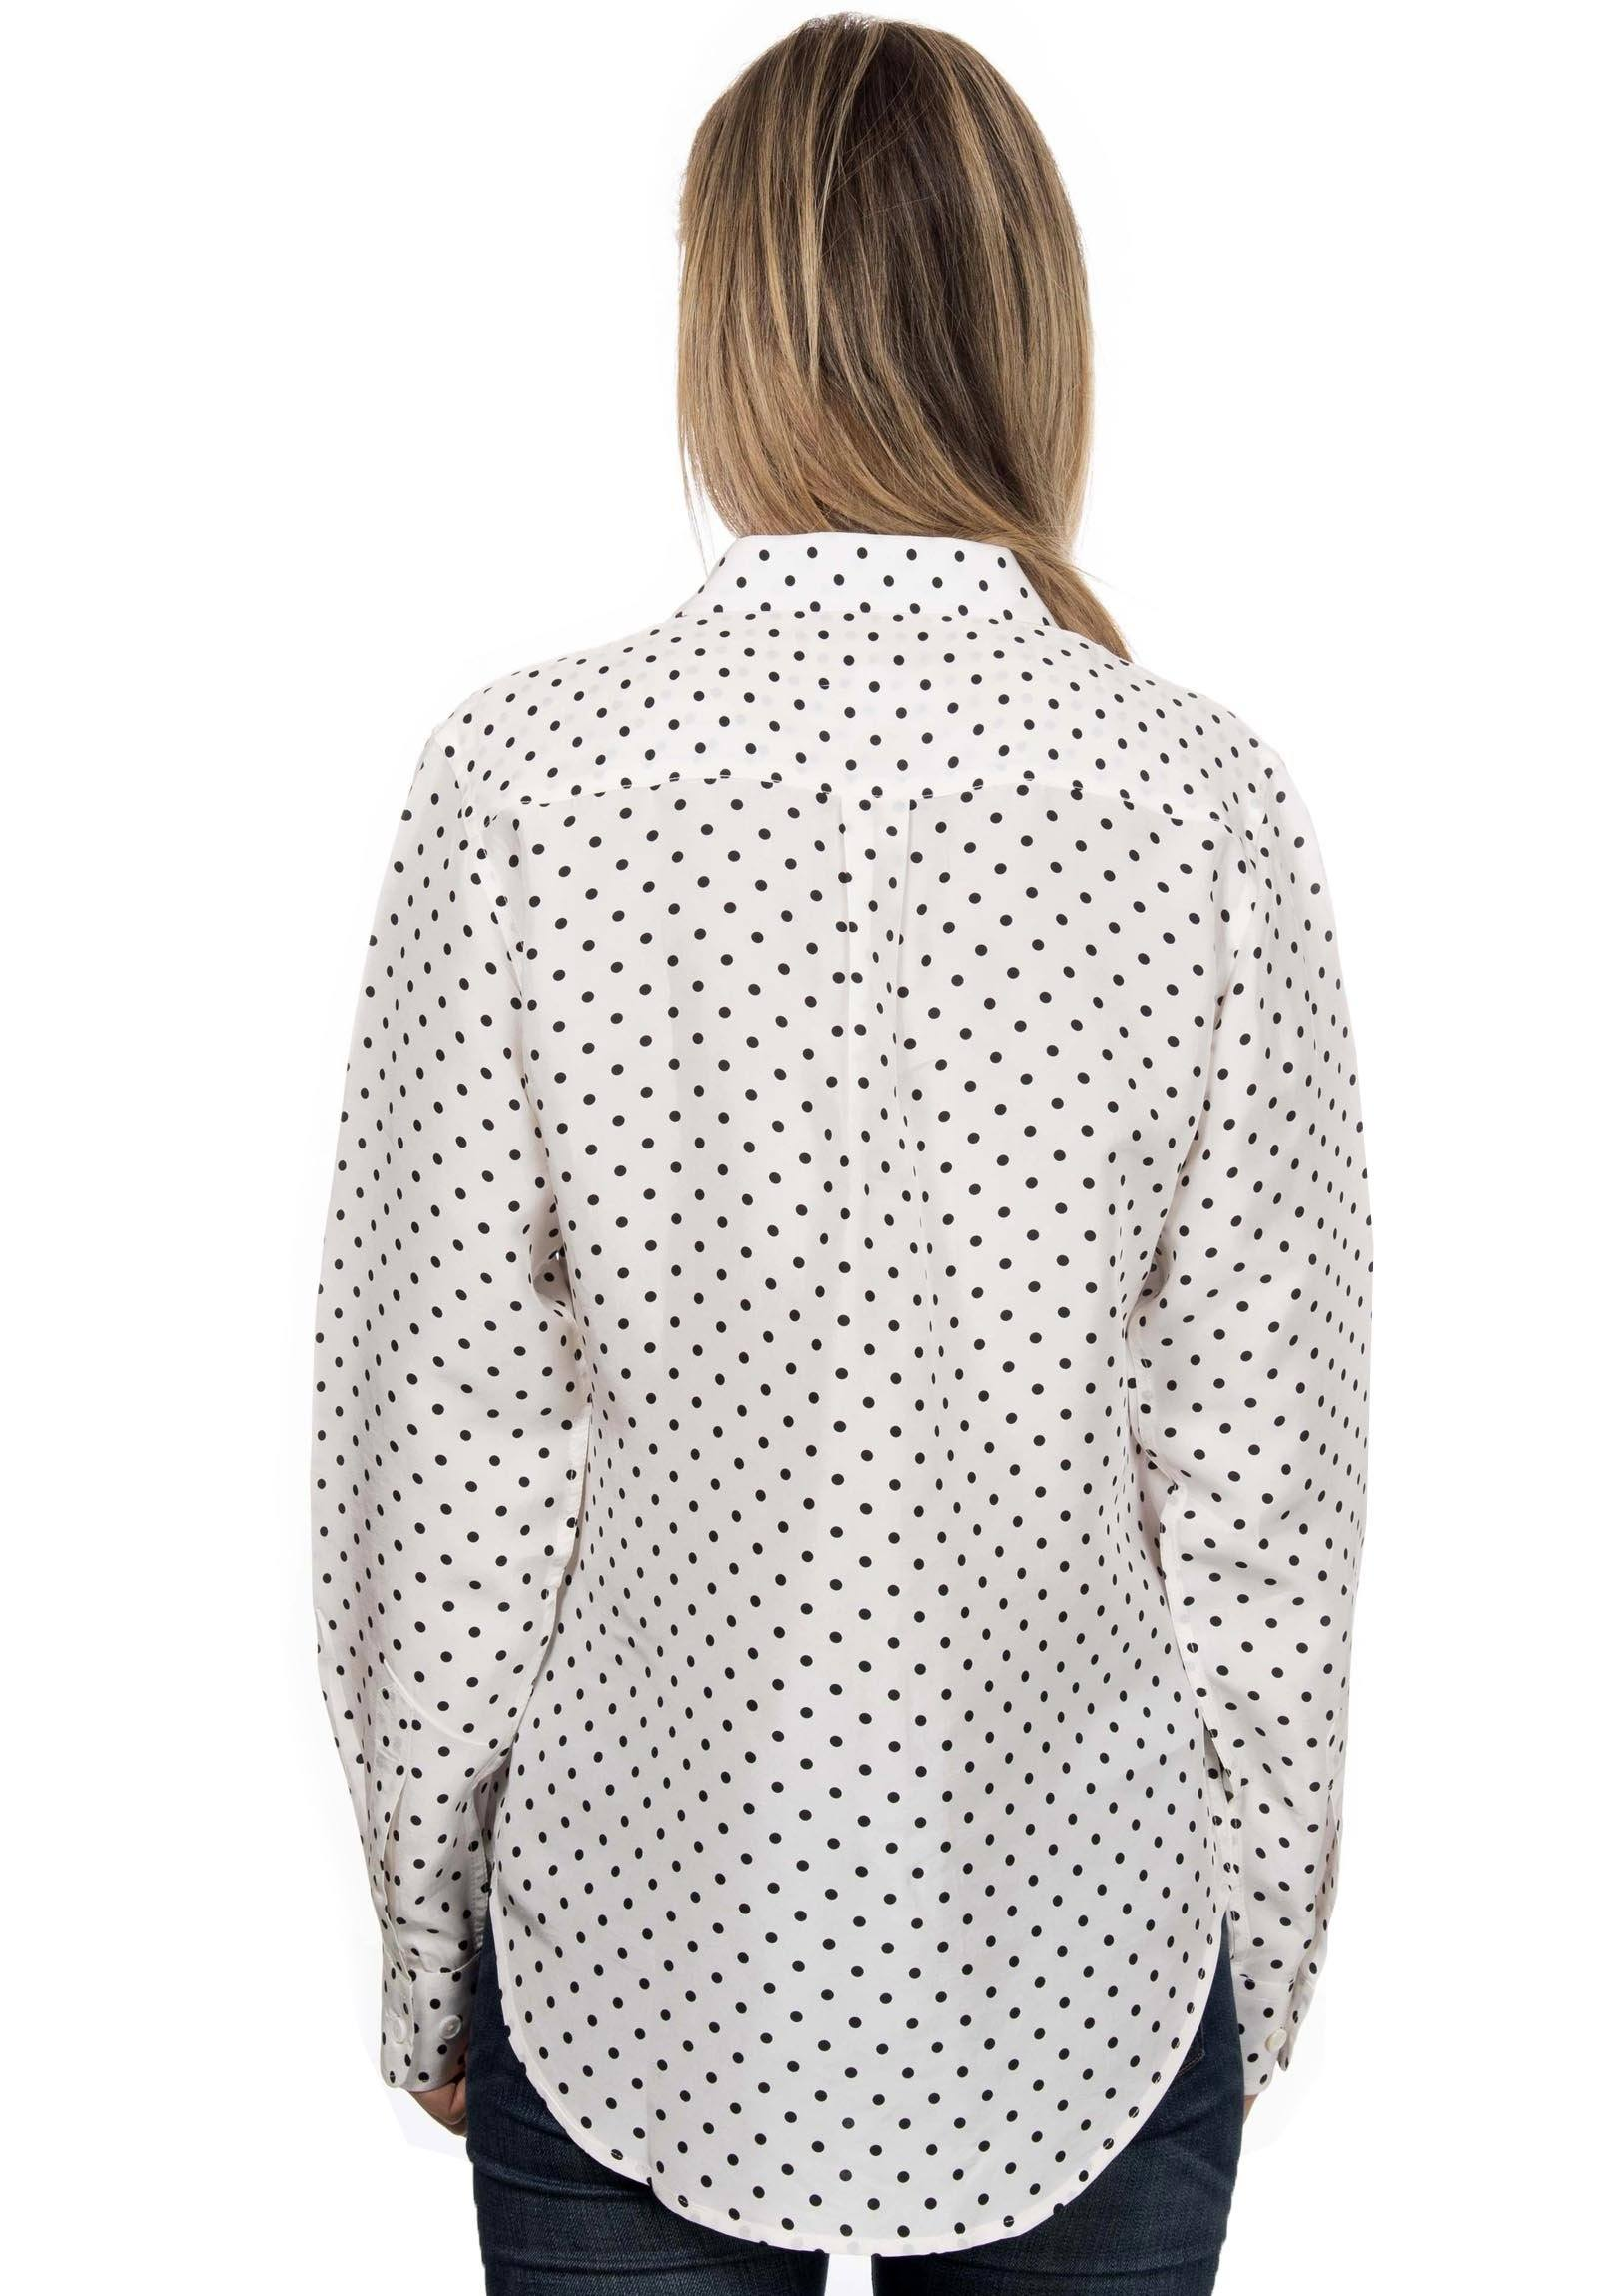 Lete Silk Polka Dots White, Sand-Washed Shirt with pockets